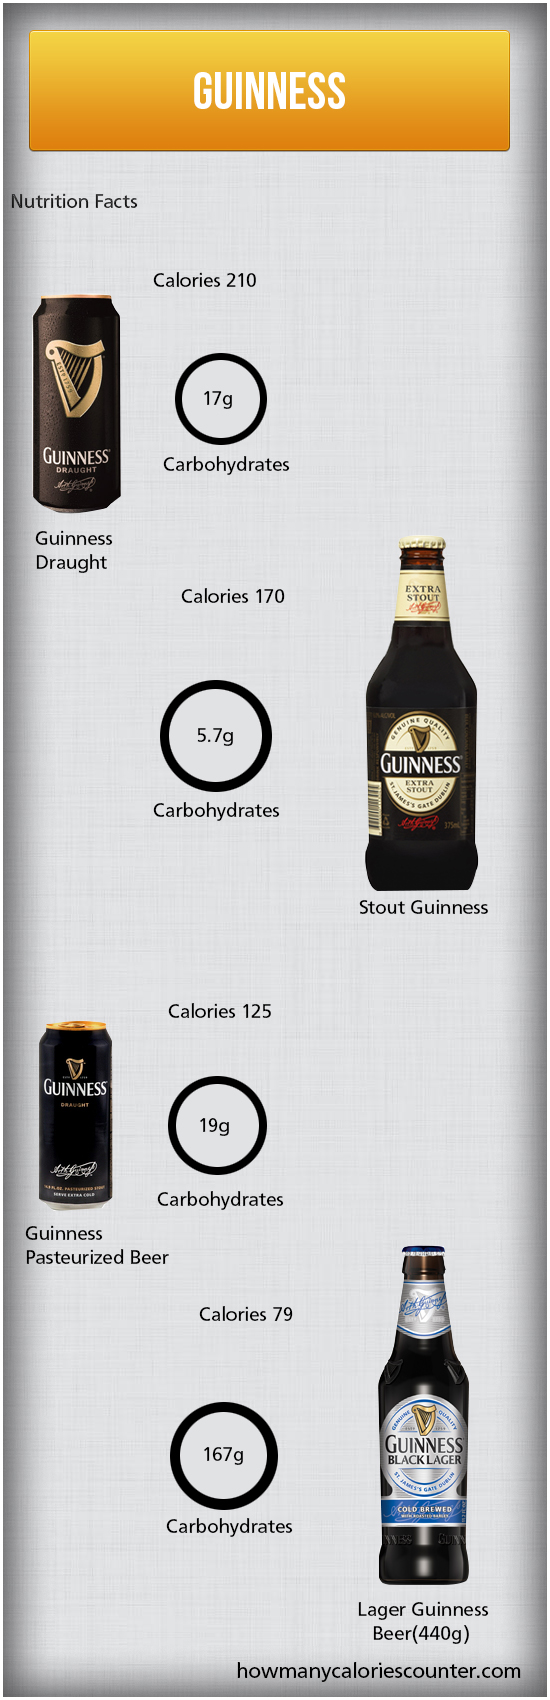 Calories in Guinness